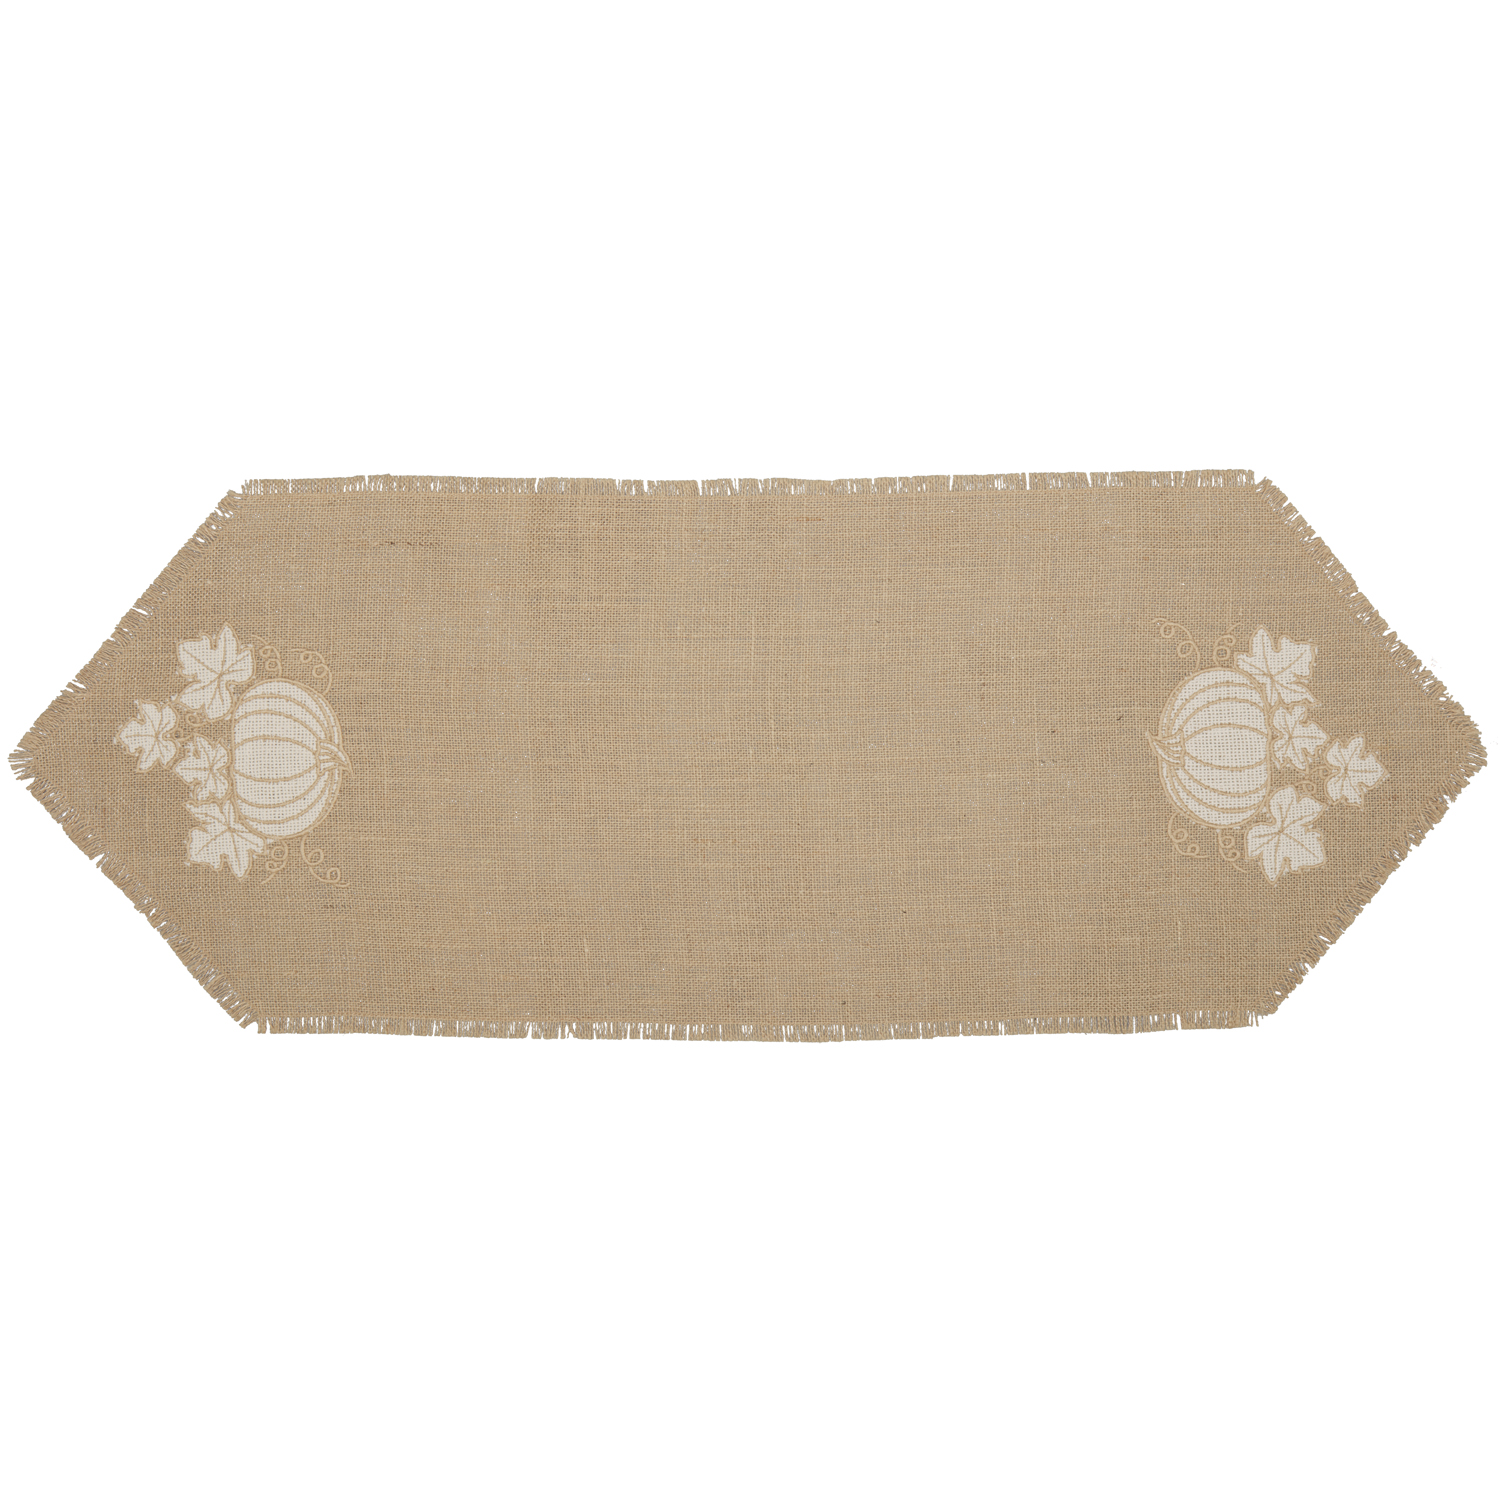 Jute Burlap Natural Pumpkin Runner 13x36